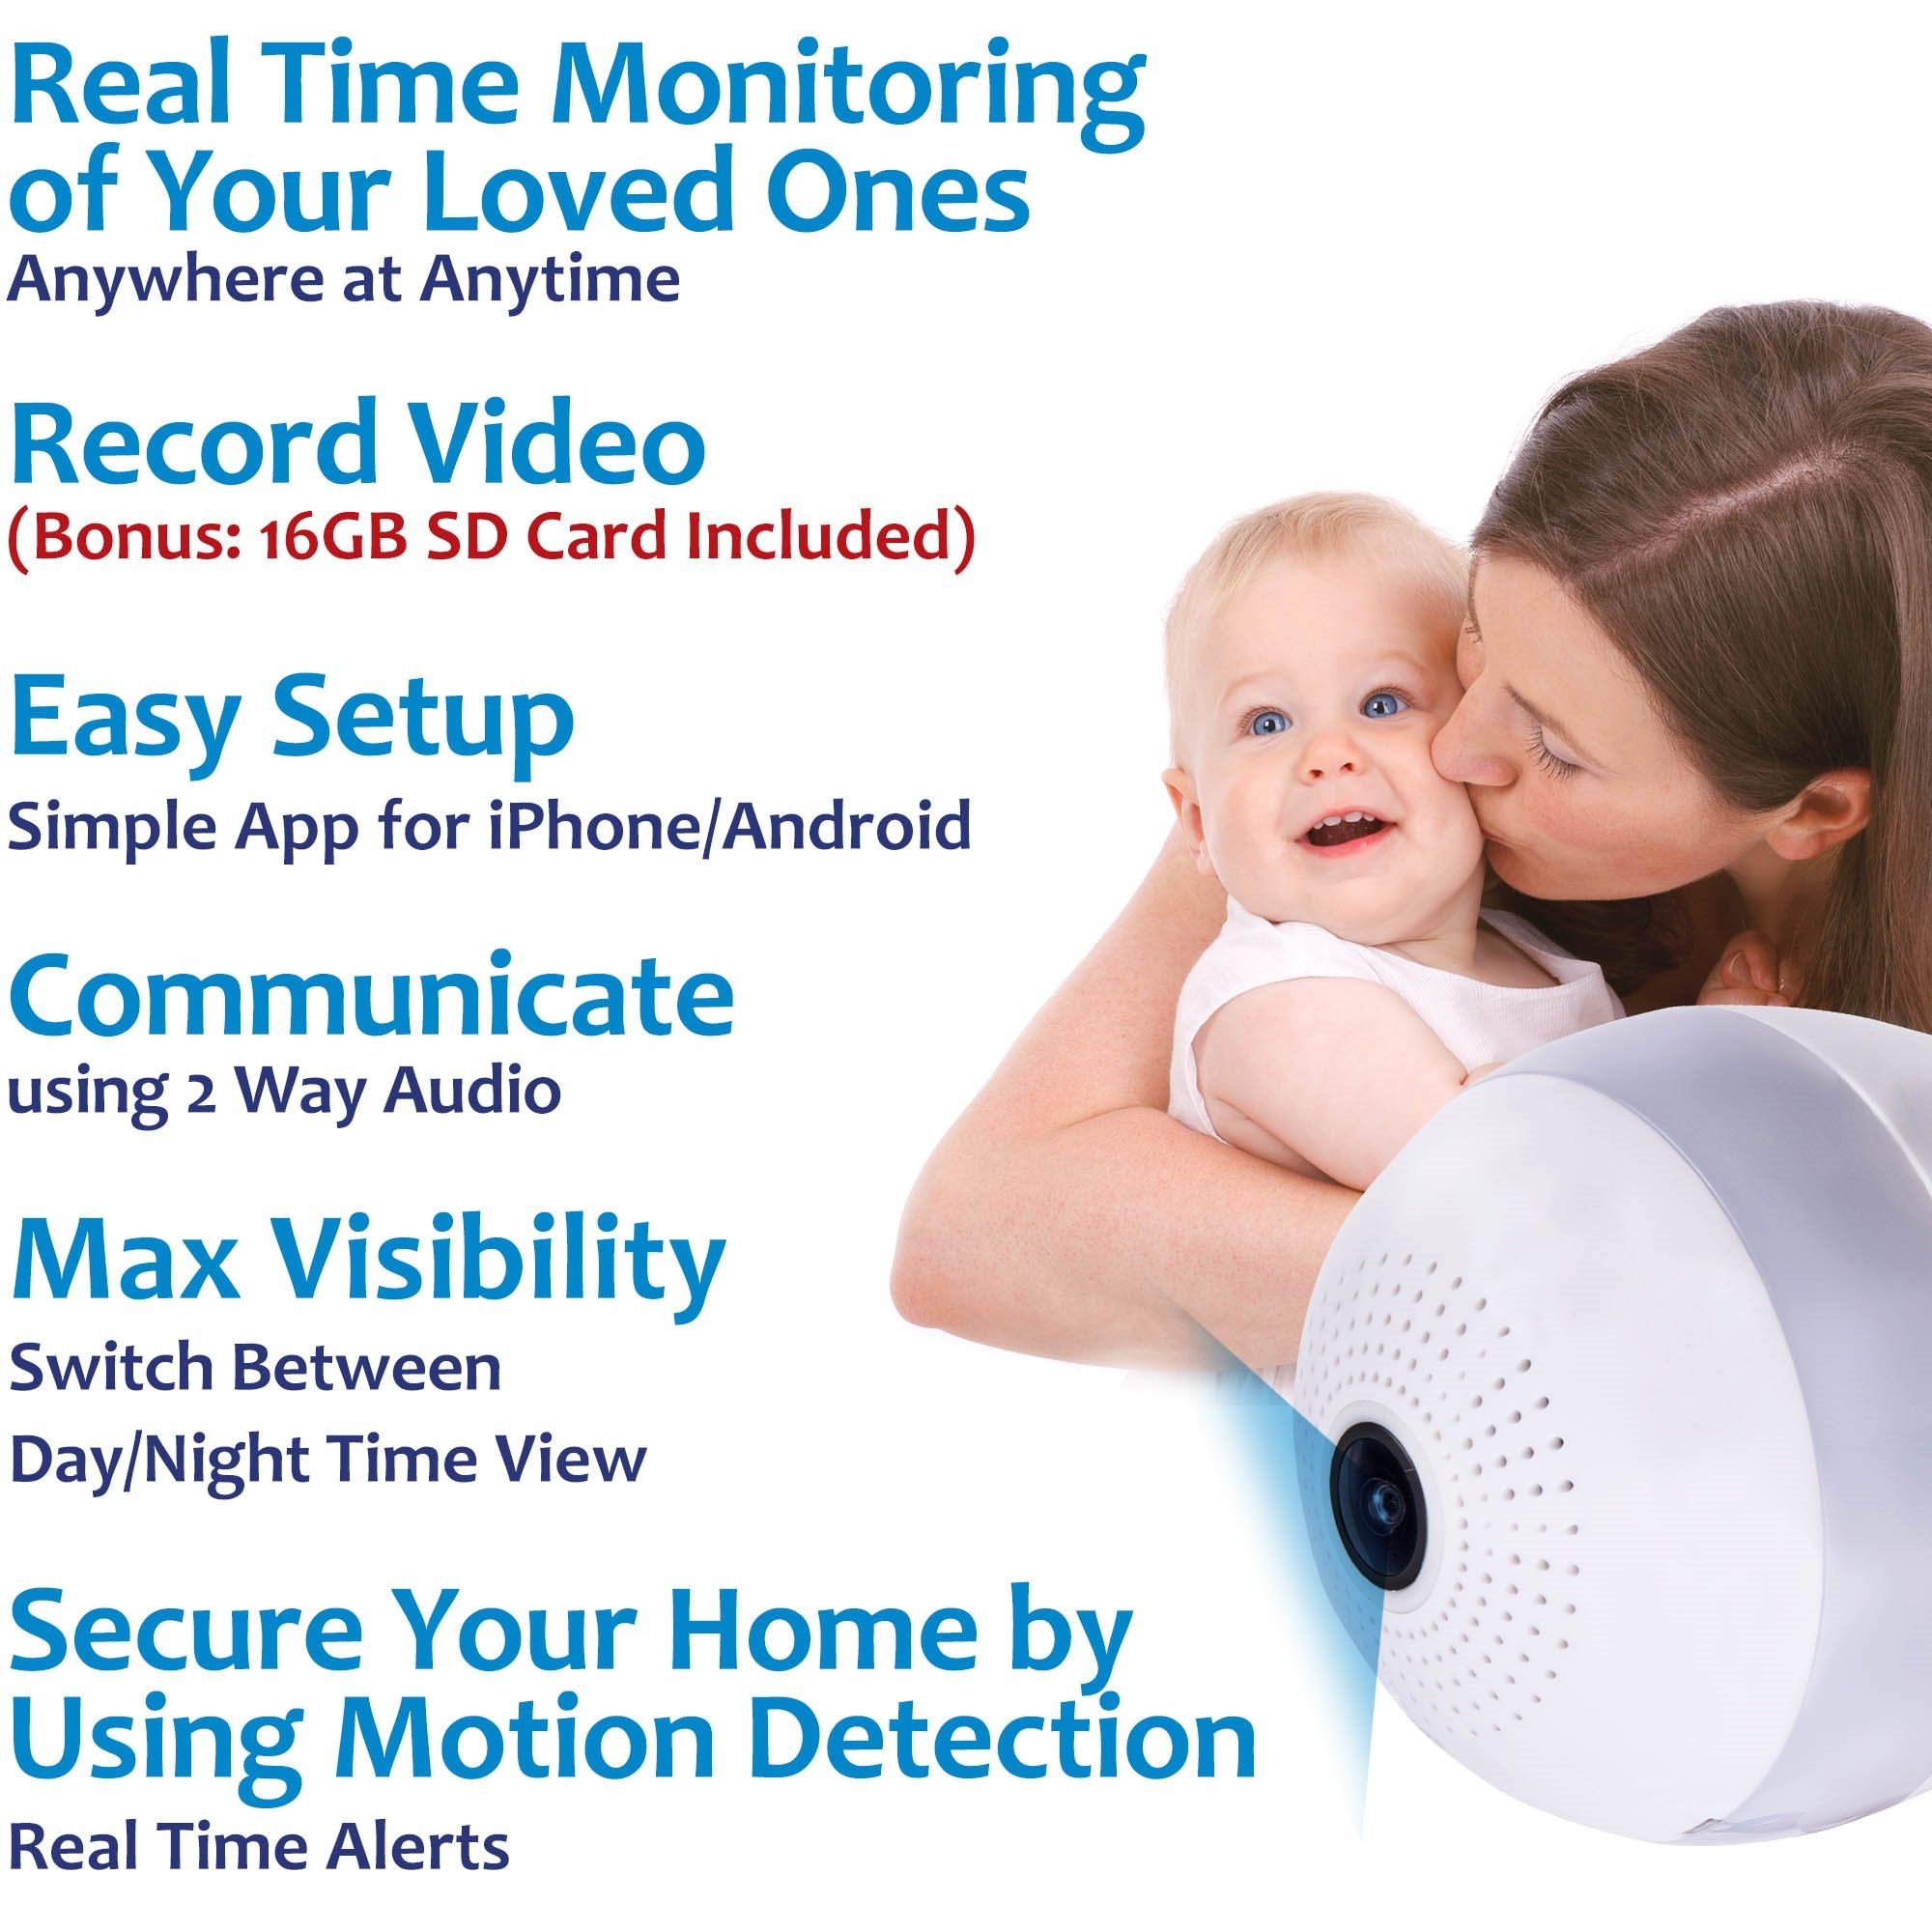 Details About Wifi Light Bulb Security Camera Bonus 16gb Sd Card 1080p Hd Fisheye Led 2 Way Switch 360 Live Feed Dome Audio Indoor Remote Home